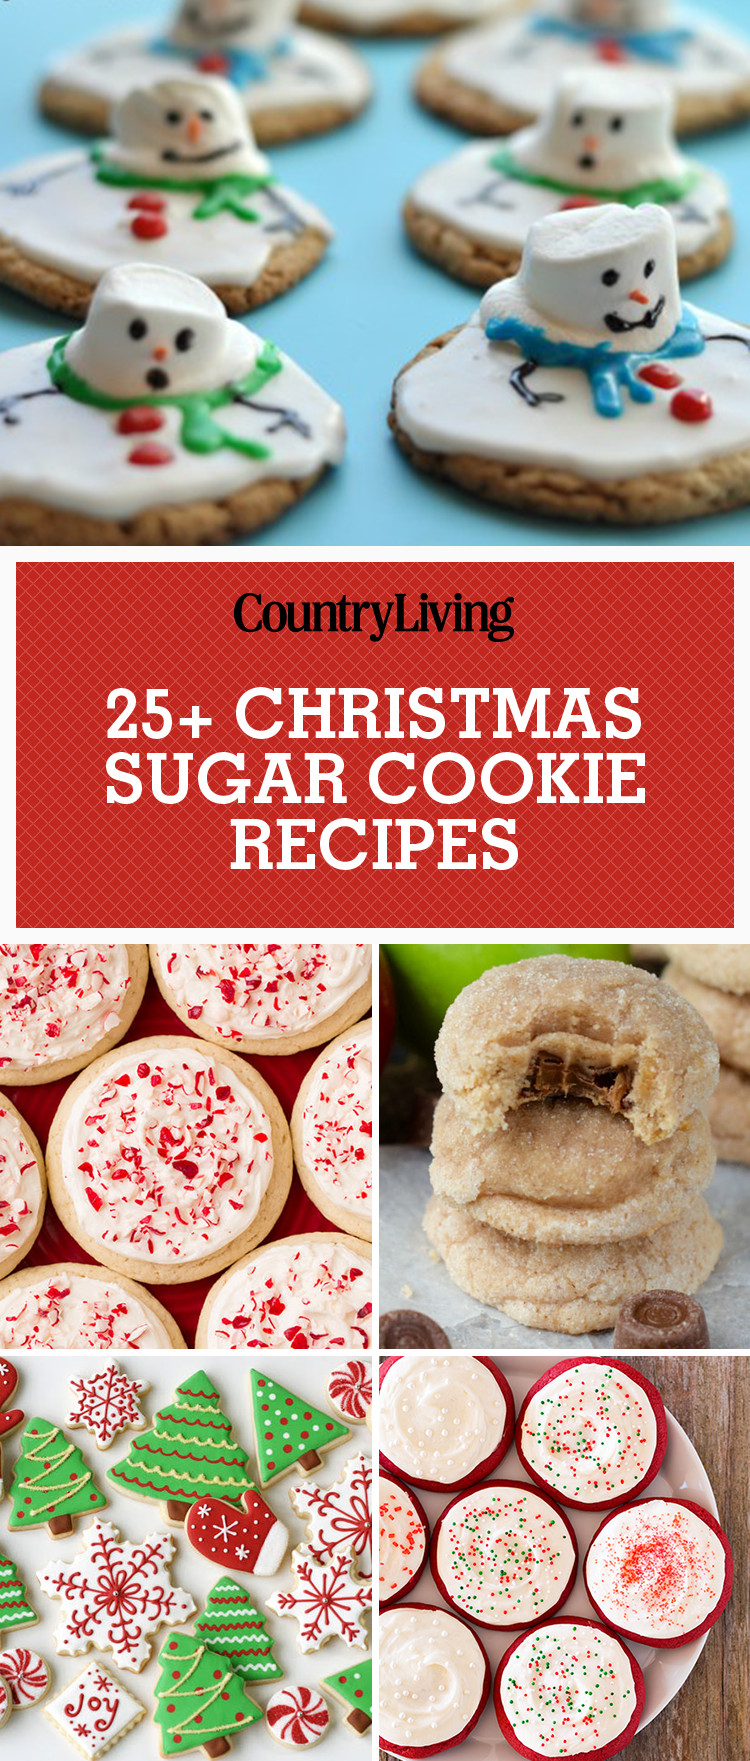 Holiday Sugar Cookies  25 Easy Christmas Sugar Cookies Recipes & Decorating